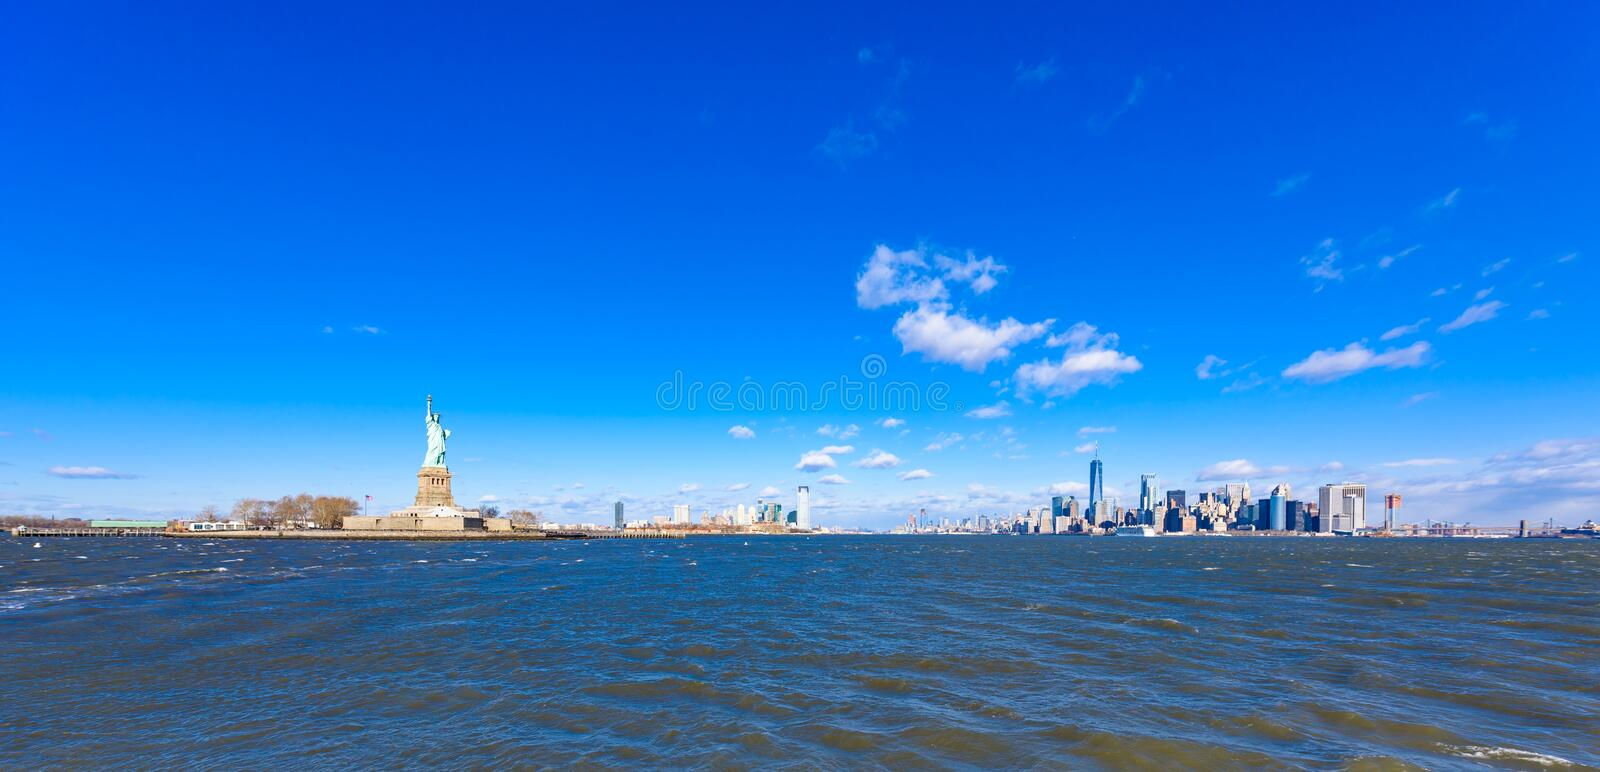 Panorama View of Statue of Liberty at New York City with Manhattan Skyline over Hudson River - USA royalty free stock photo